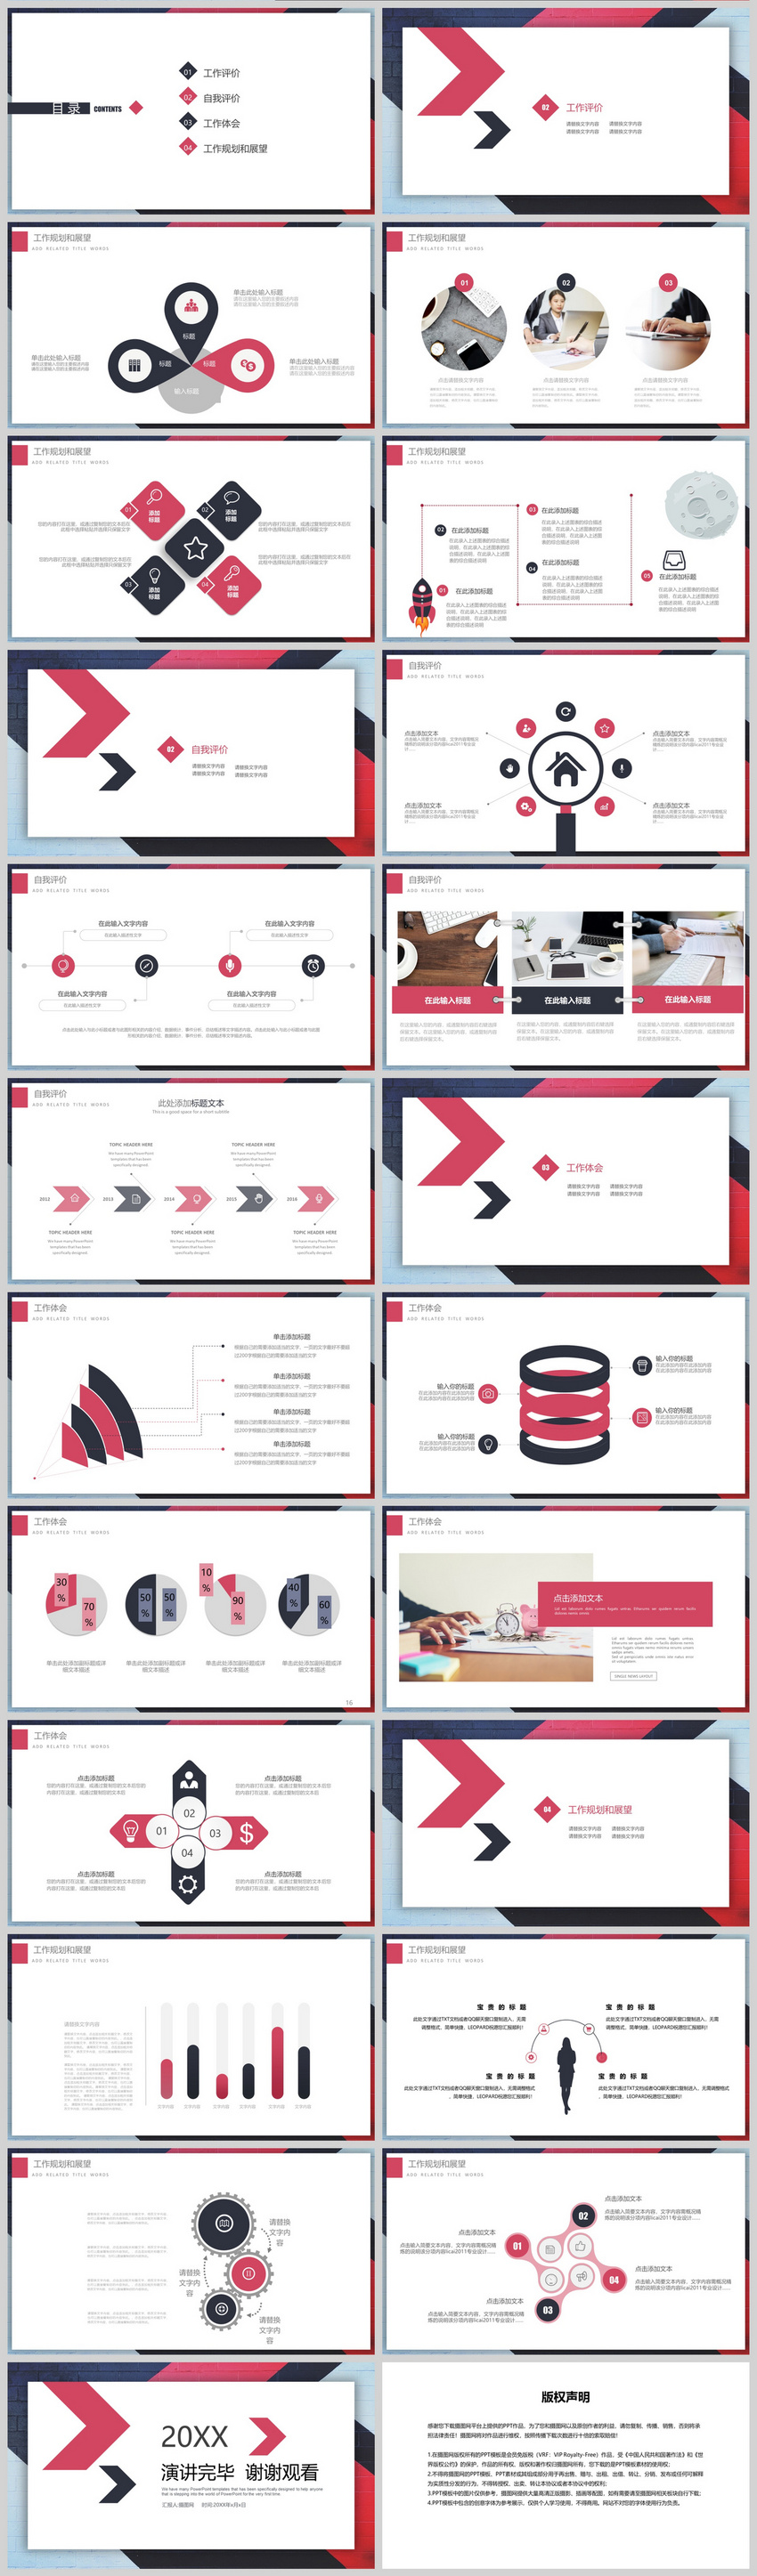 red and black creative debriefing report ppt template